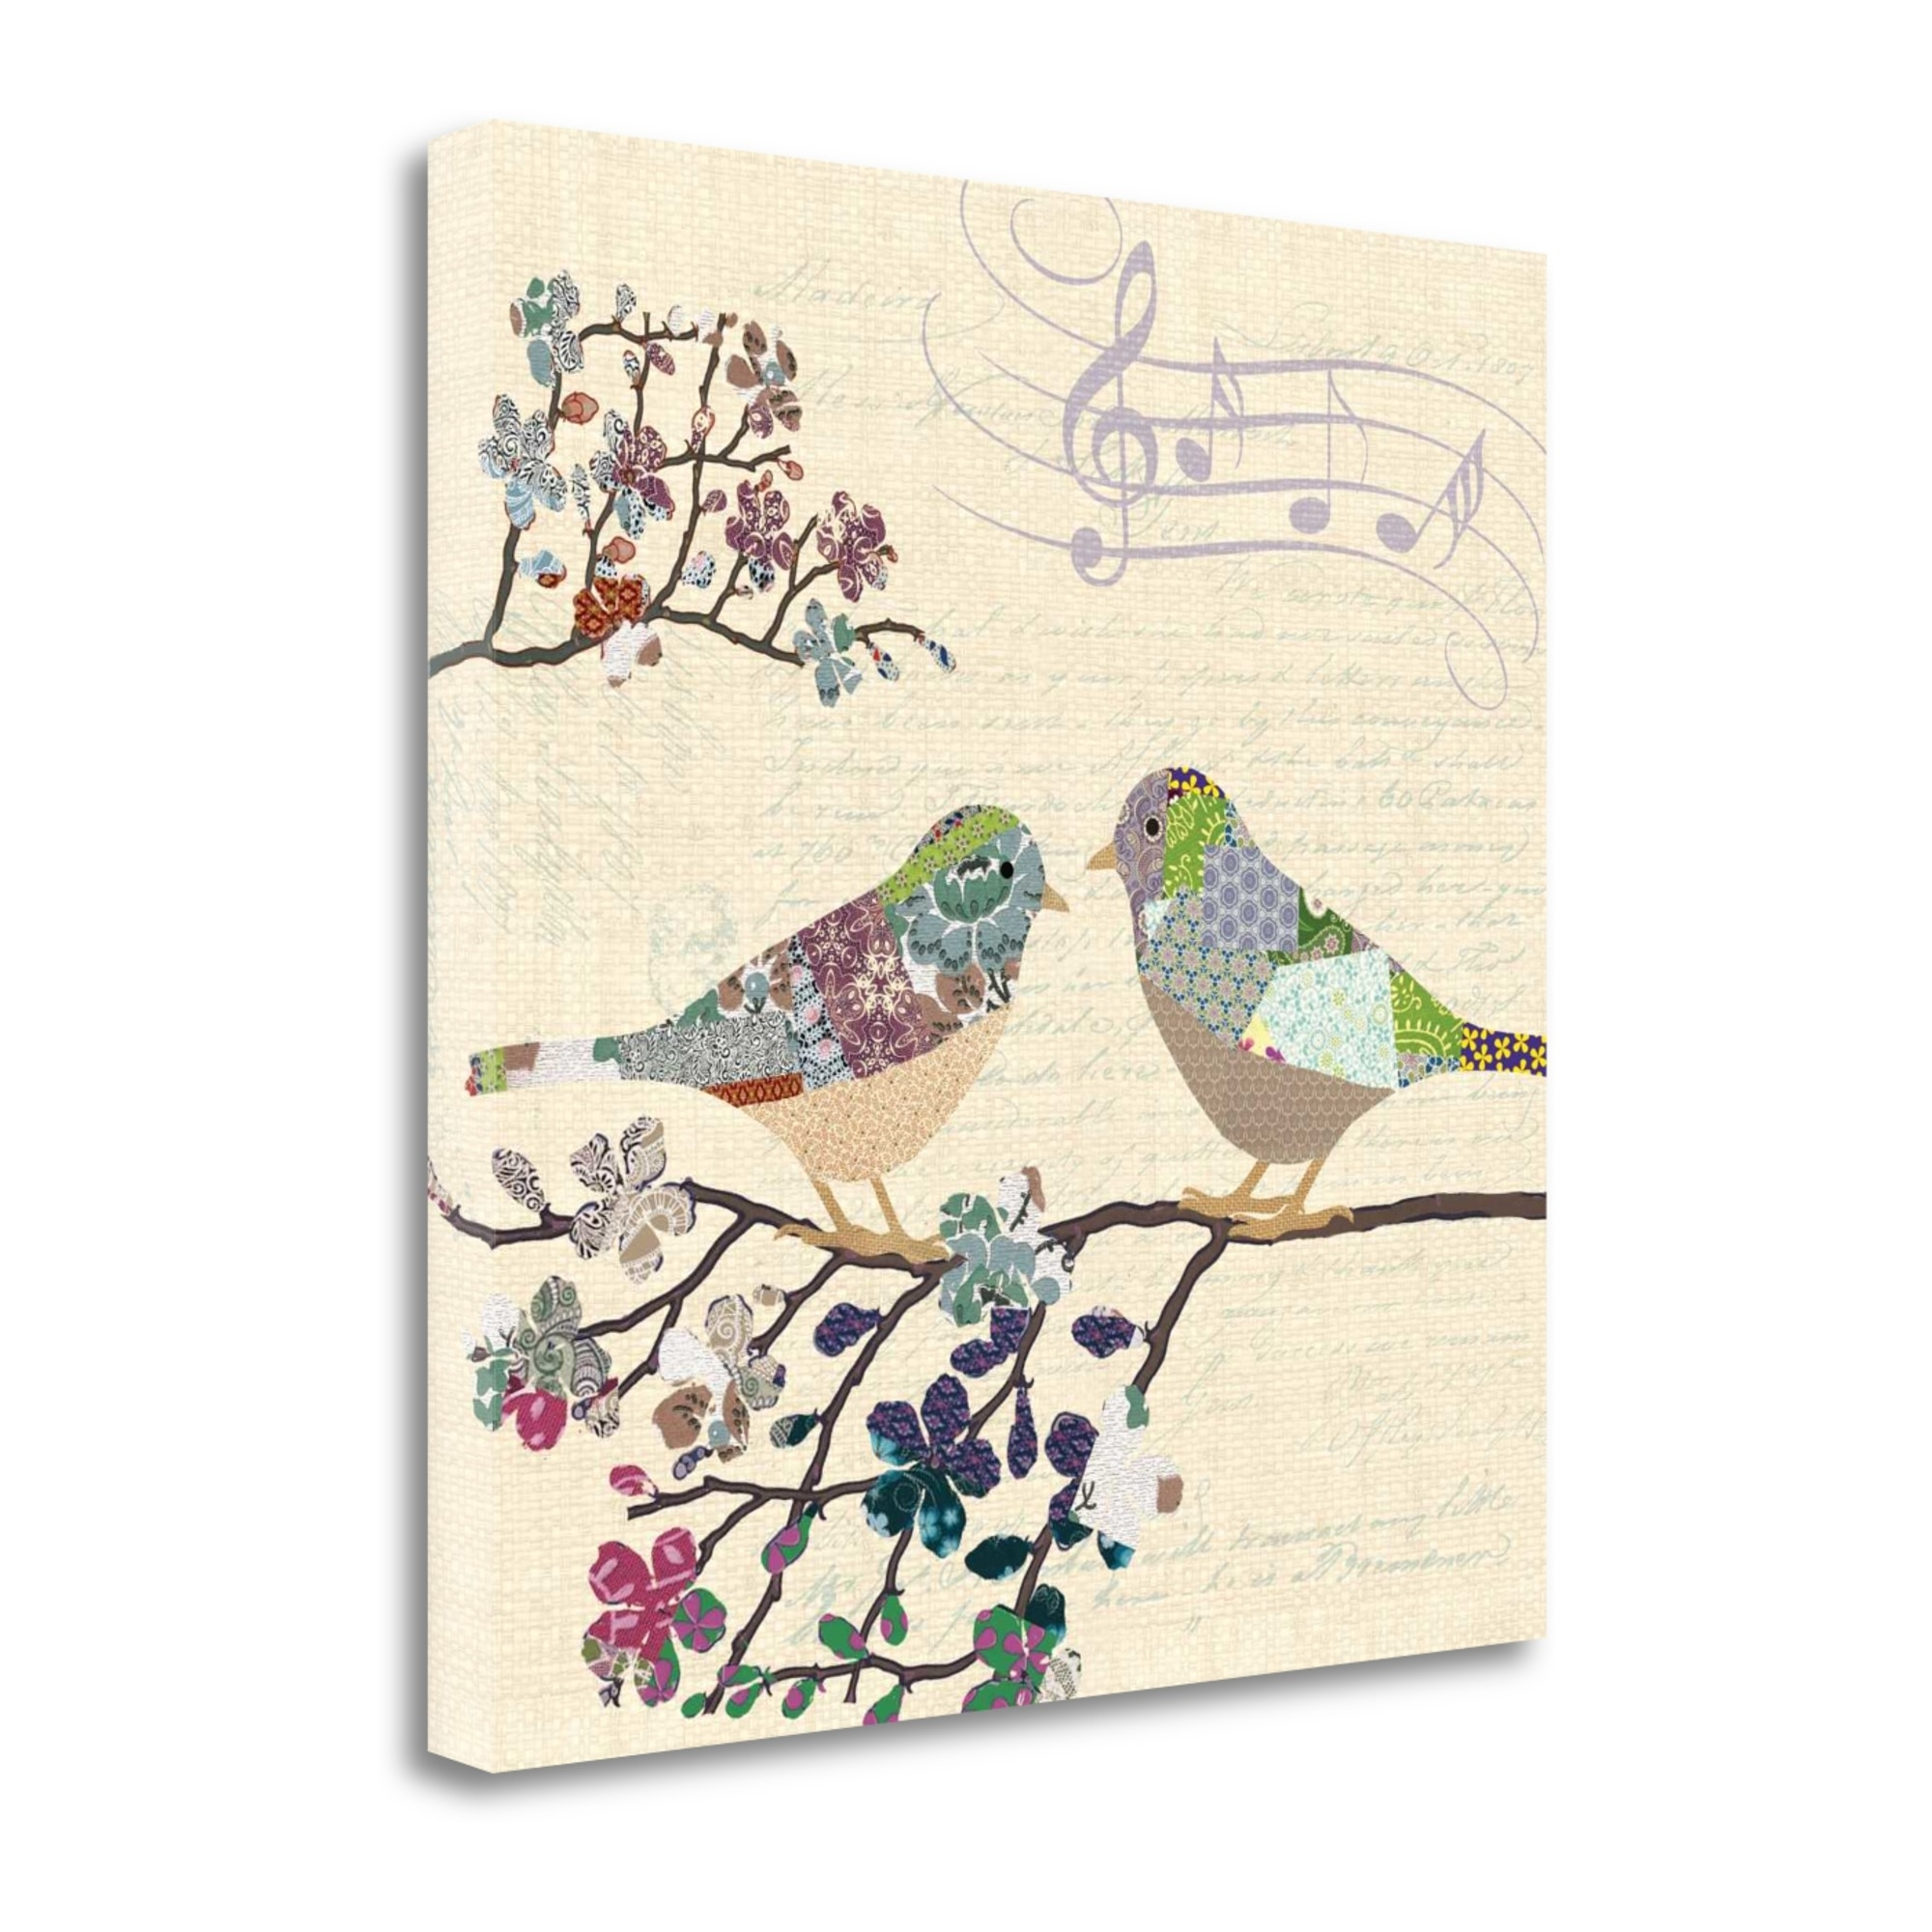 "Patch Work Birds II By Piper Ballantyne, 20"" x 20\"" Fine Art Giclee Print on Gallery Wrap Canvas, Ready to Hang"